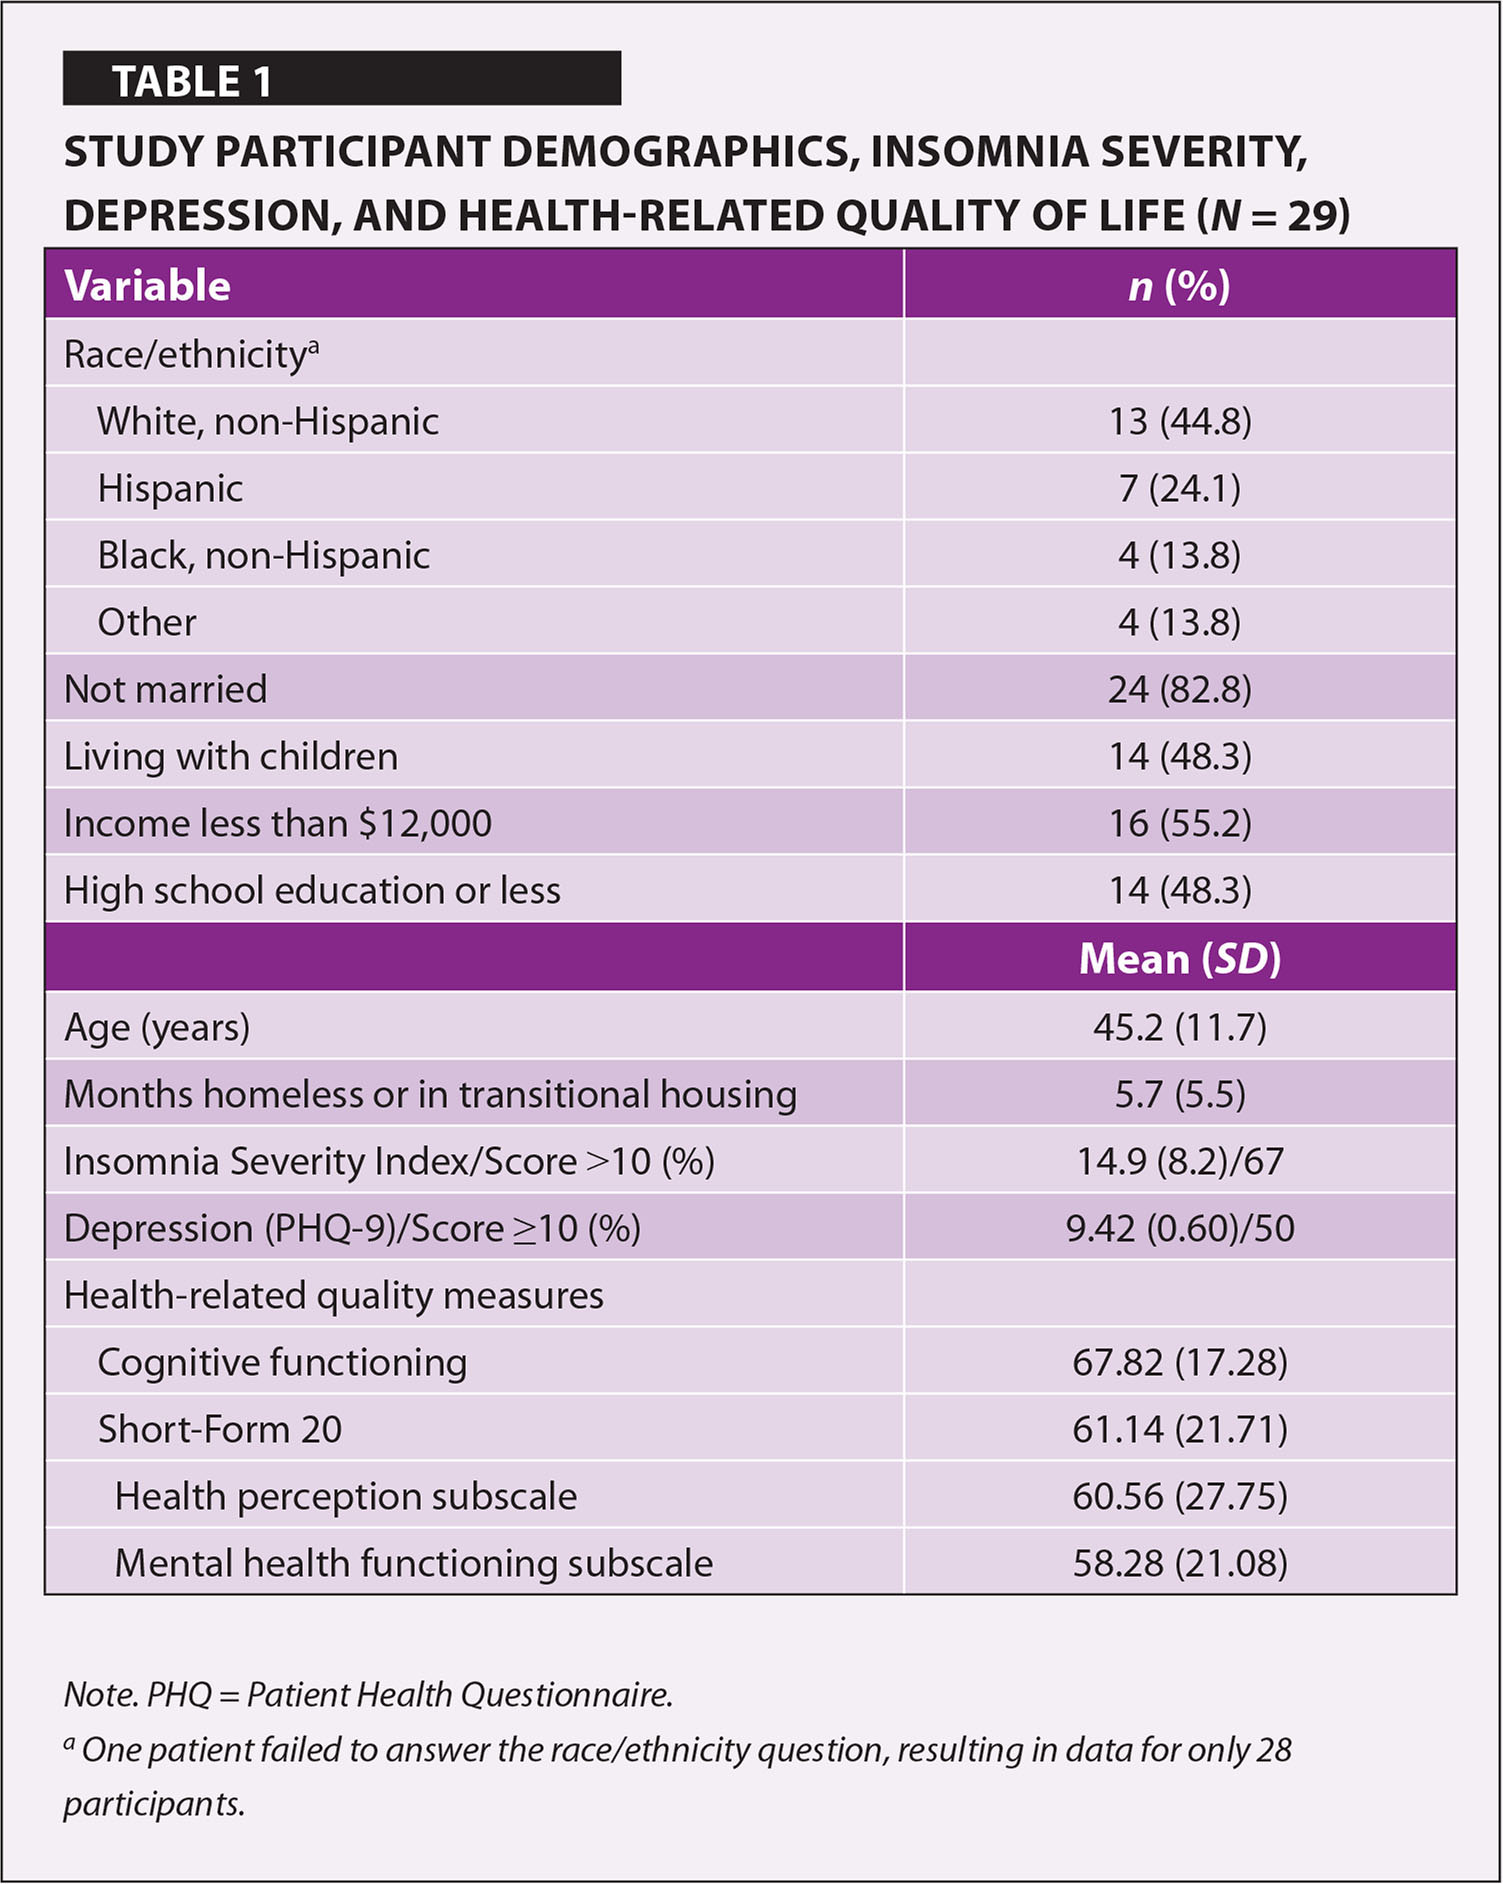 Study Participant Demographics, Insomnia Severity, Depression, and Health-Related Quality of Life (N = 29)